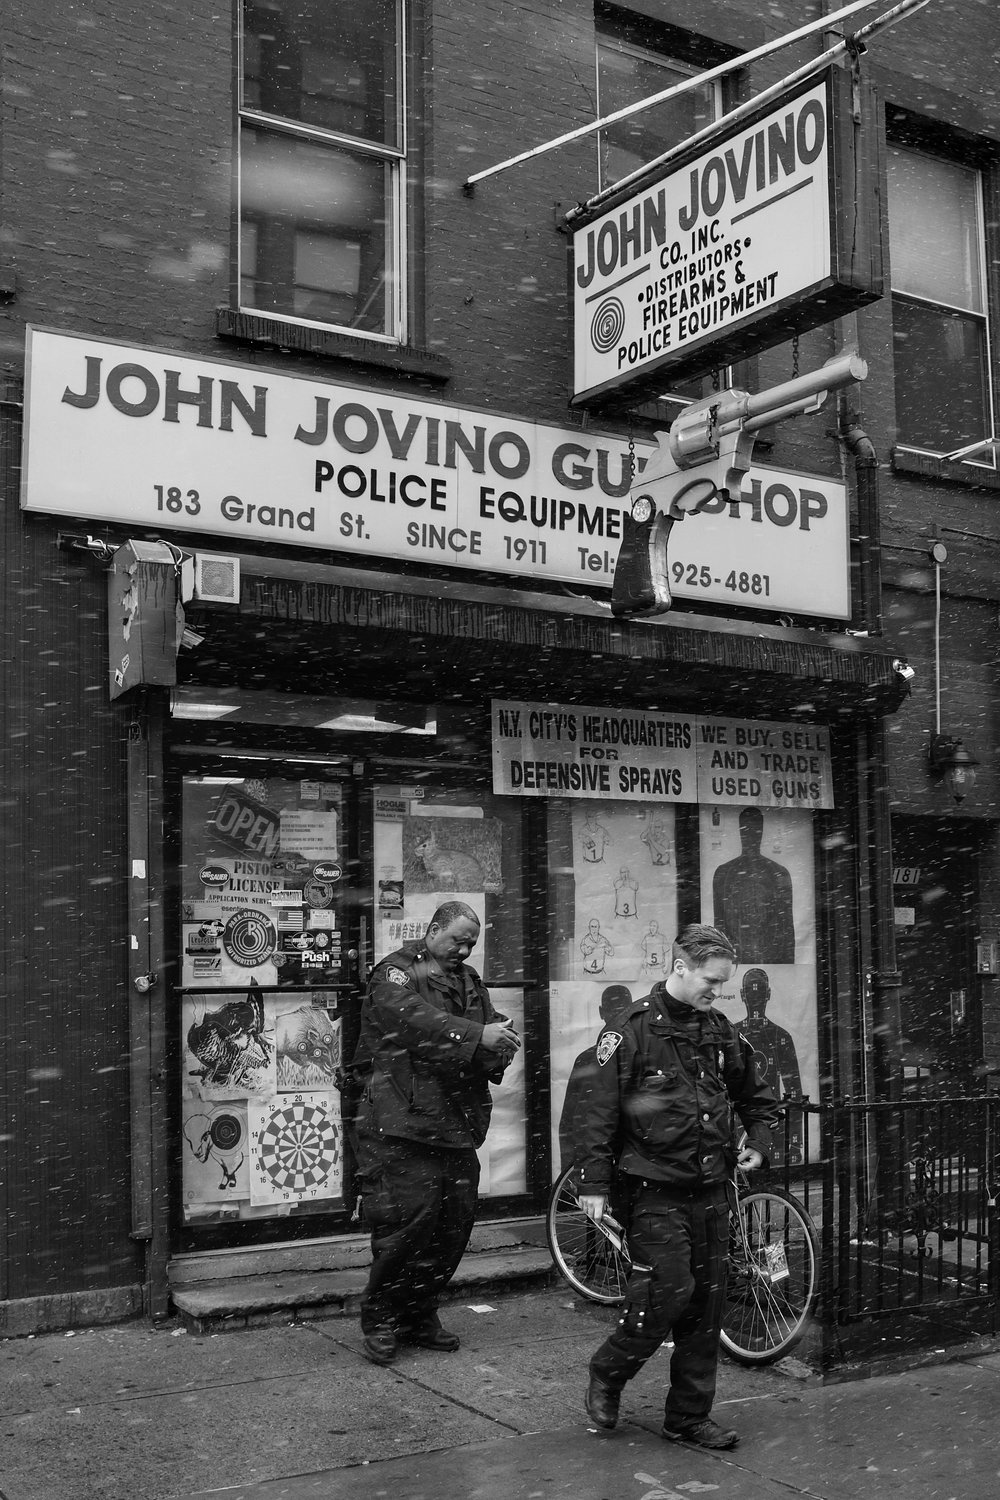 John Jovino Gun Shop. Grand Street. Little Italy. New York City. 2017